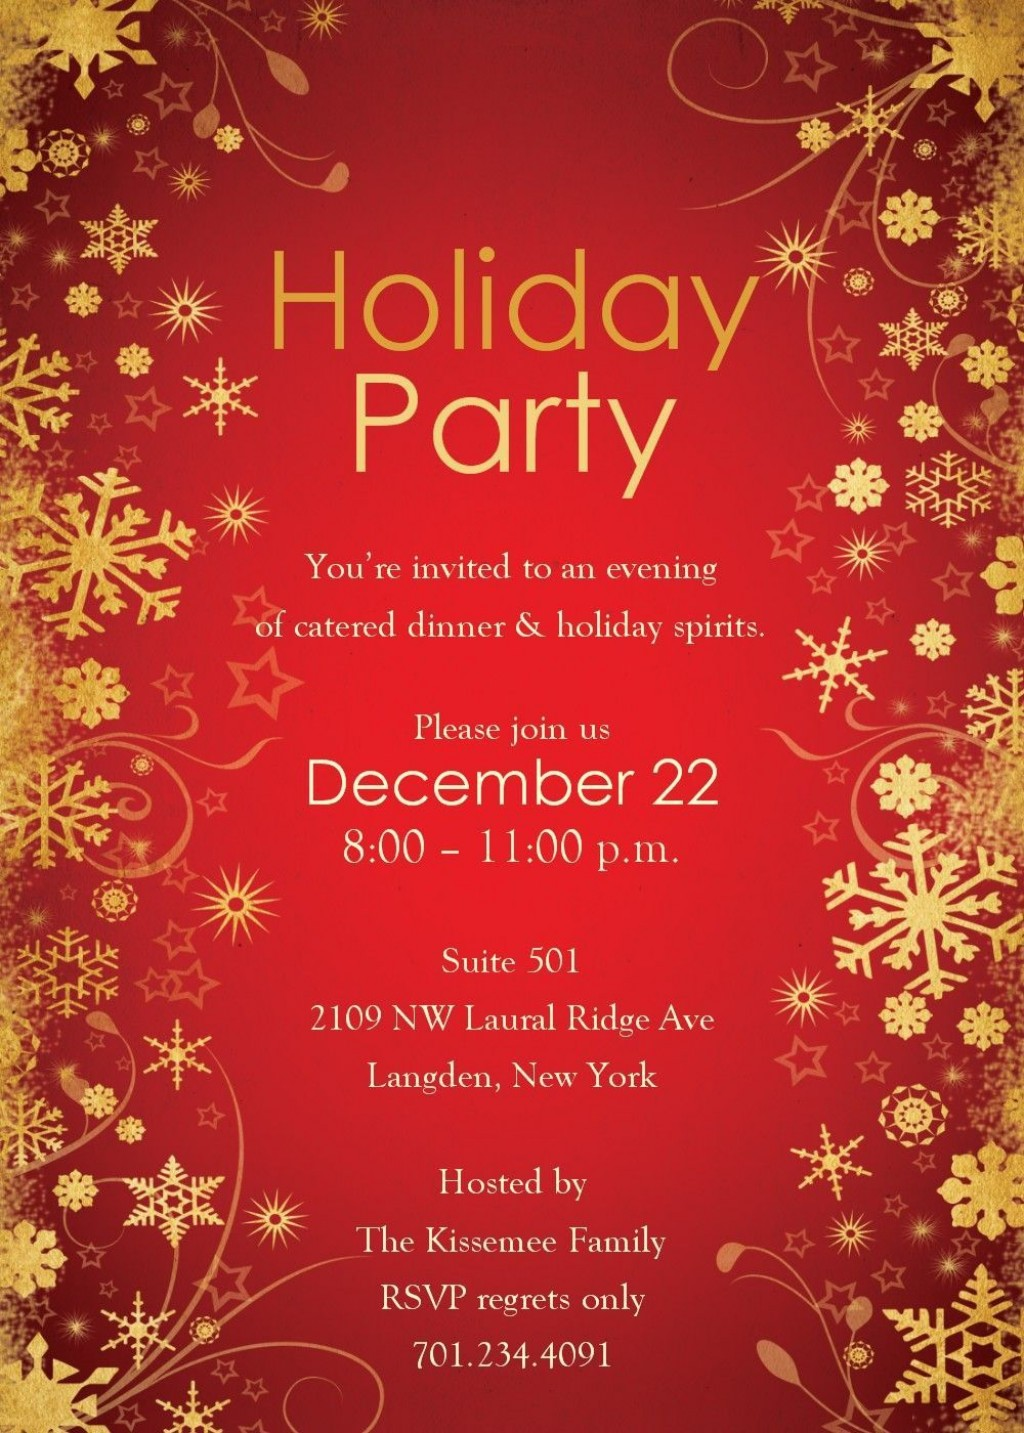 007 Stirring Christma Party Invite Template Word Highest Quality  Holiday Free Invitation Wording ExampleLarge